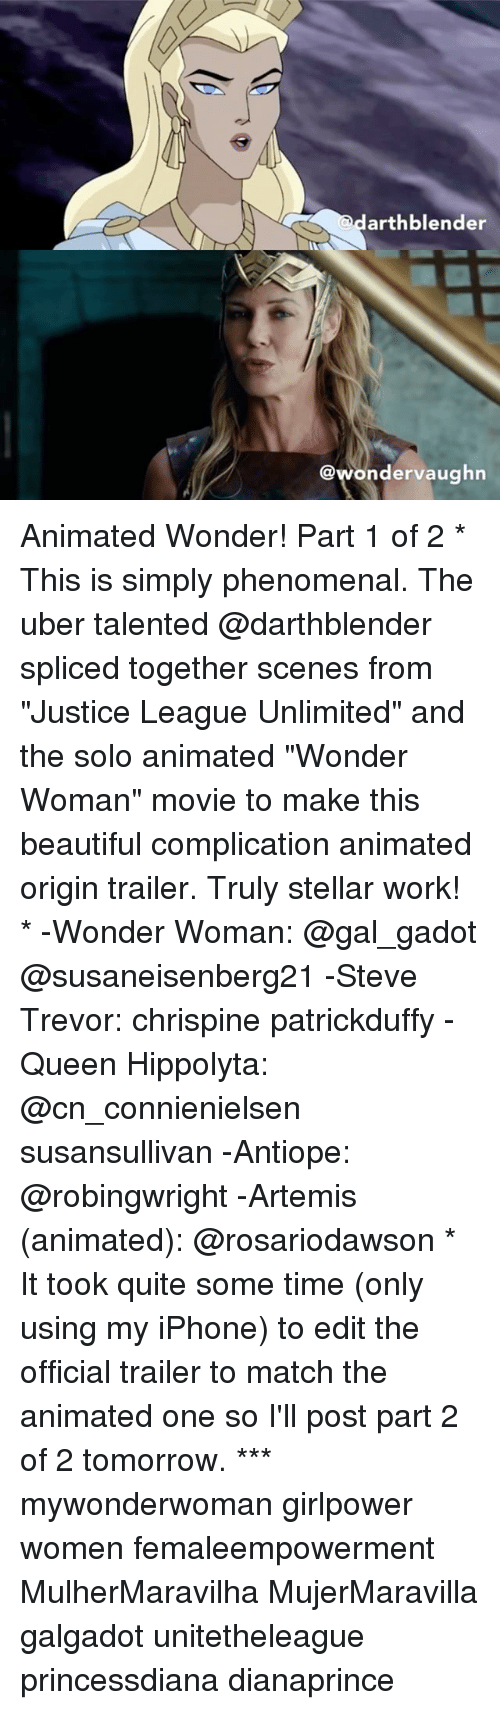 "Beautiful, Iphone, and Memes: arthblender  @wondervaughn Animated Wonder! Part 1 of 2 * This is simply phenomenal. The uber talented @darthblender spliced together scenes from ""Justice League Unlimited"" and the solo animated ""Wonder Woman"" movie to make this beautiful complication animated origin trailer. Truly stellar work! * -Wonder Woman: @gal_gadot @susaneisenberg21 -Steve Trevor: chrispine patrickduffy -Queen Hippolyta: @cn_connienielsen susansullivan -Antiope: @robingwright -Artemis (animated): @rosariodawson * It took quite some time (only using my iPhone) to edit the official trailer to match the animated one so I'll post part 2 of 2 tomorrow. *** mywonderwoman girlpower women femaleempowerment MulherMaravilha MujerMaravilla galgadot unitetheleague princessdiana dianaprince"